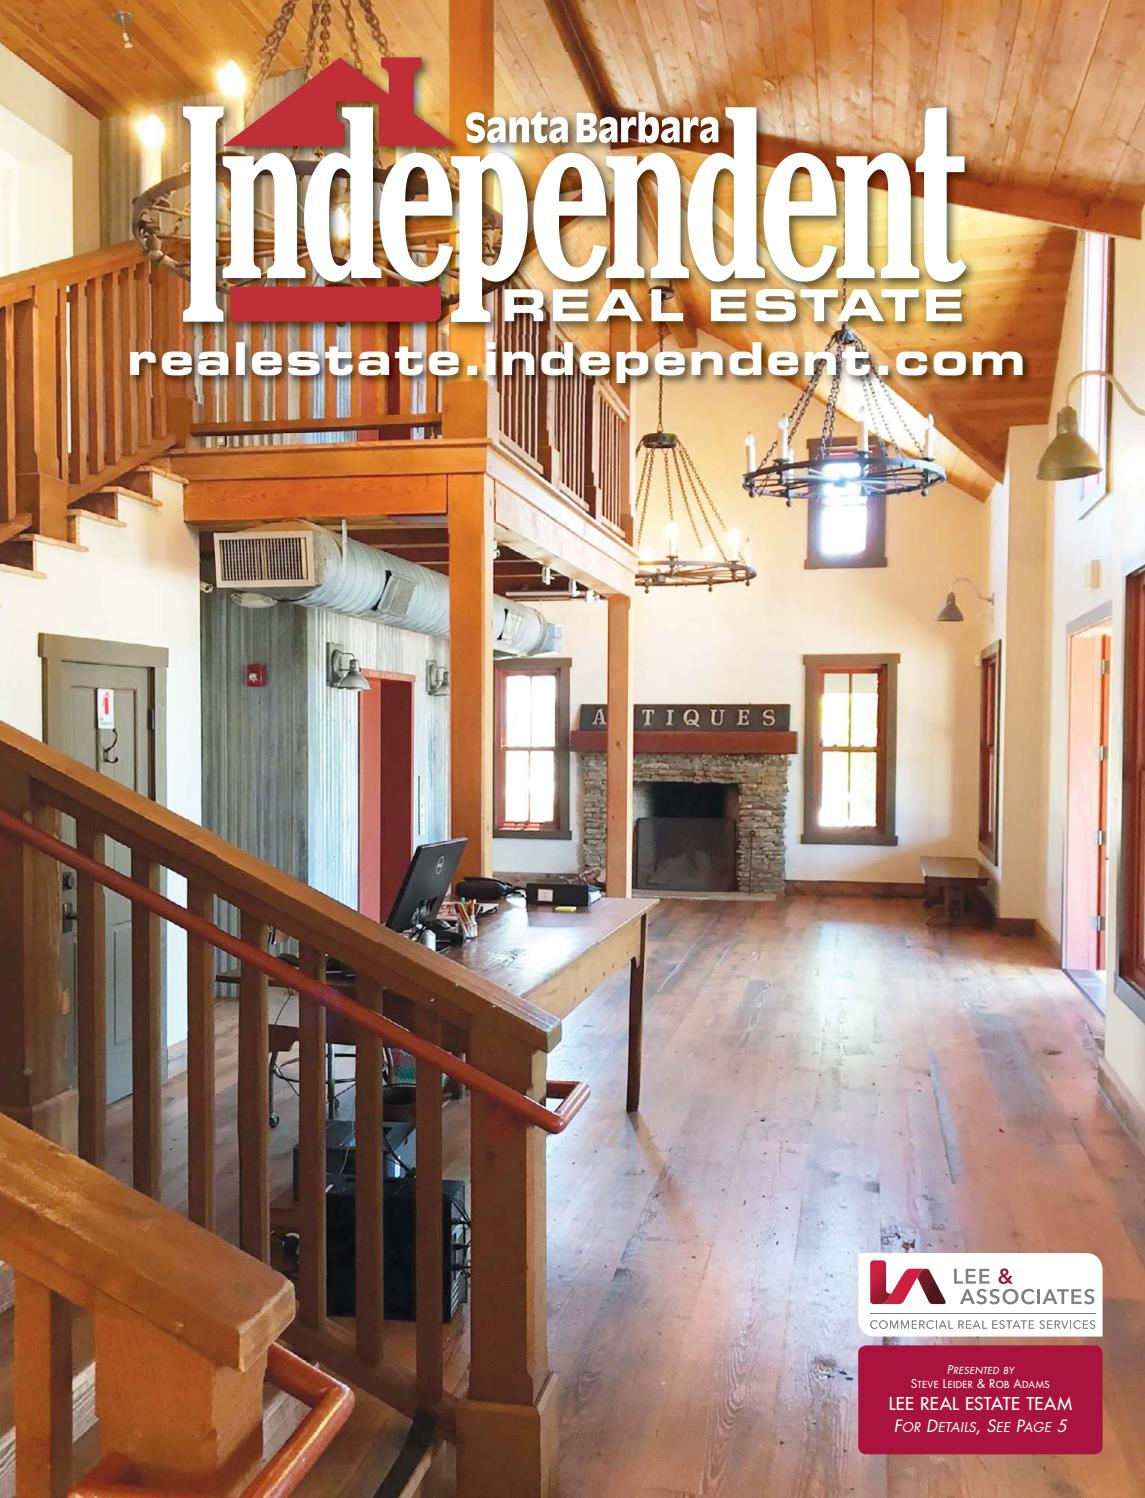 Santa Barbara Independent Real Estate, 09/28/2017 By SB Independent   Issuu